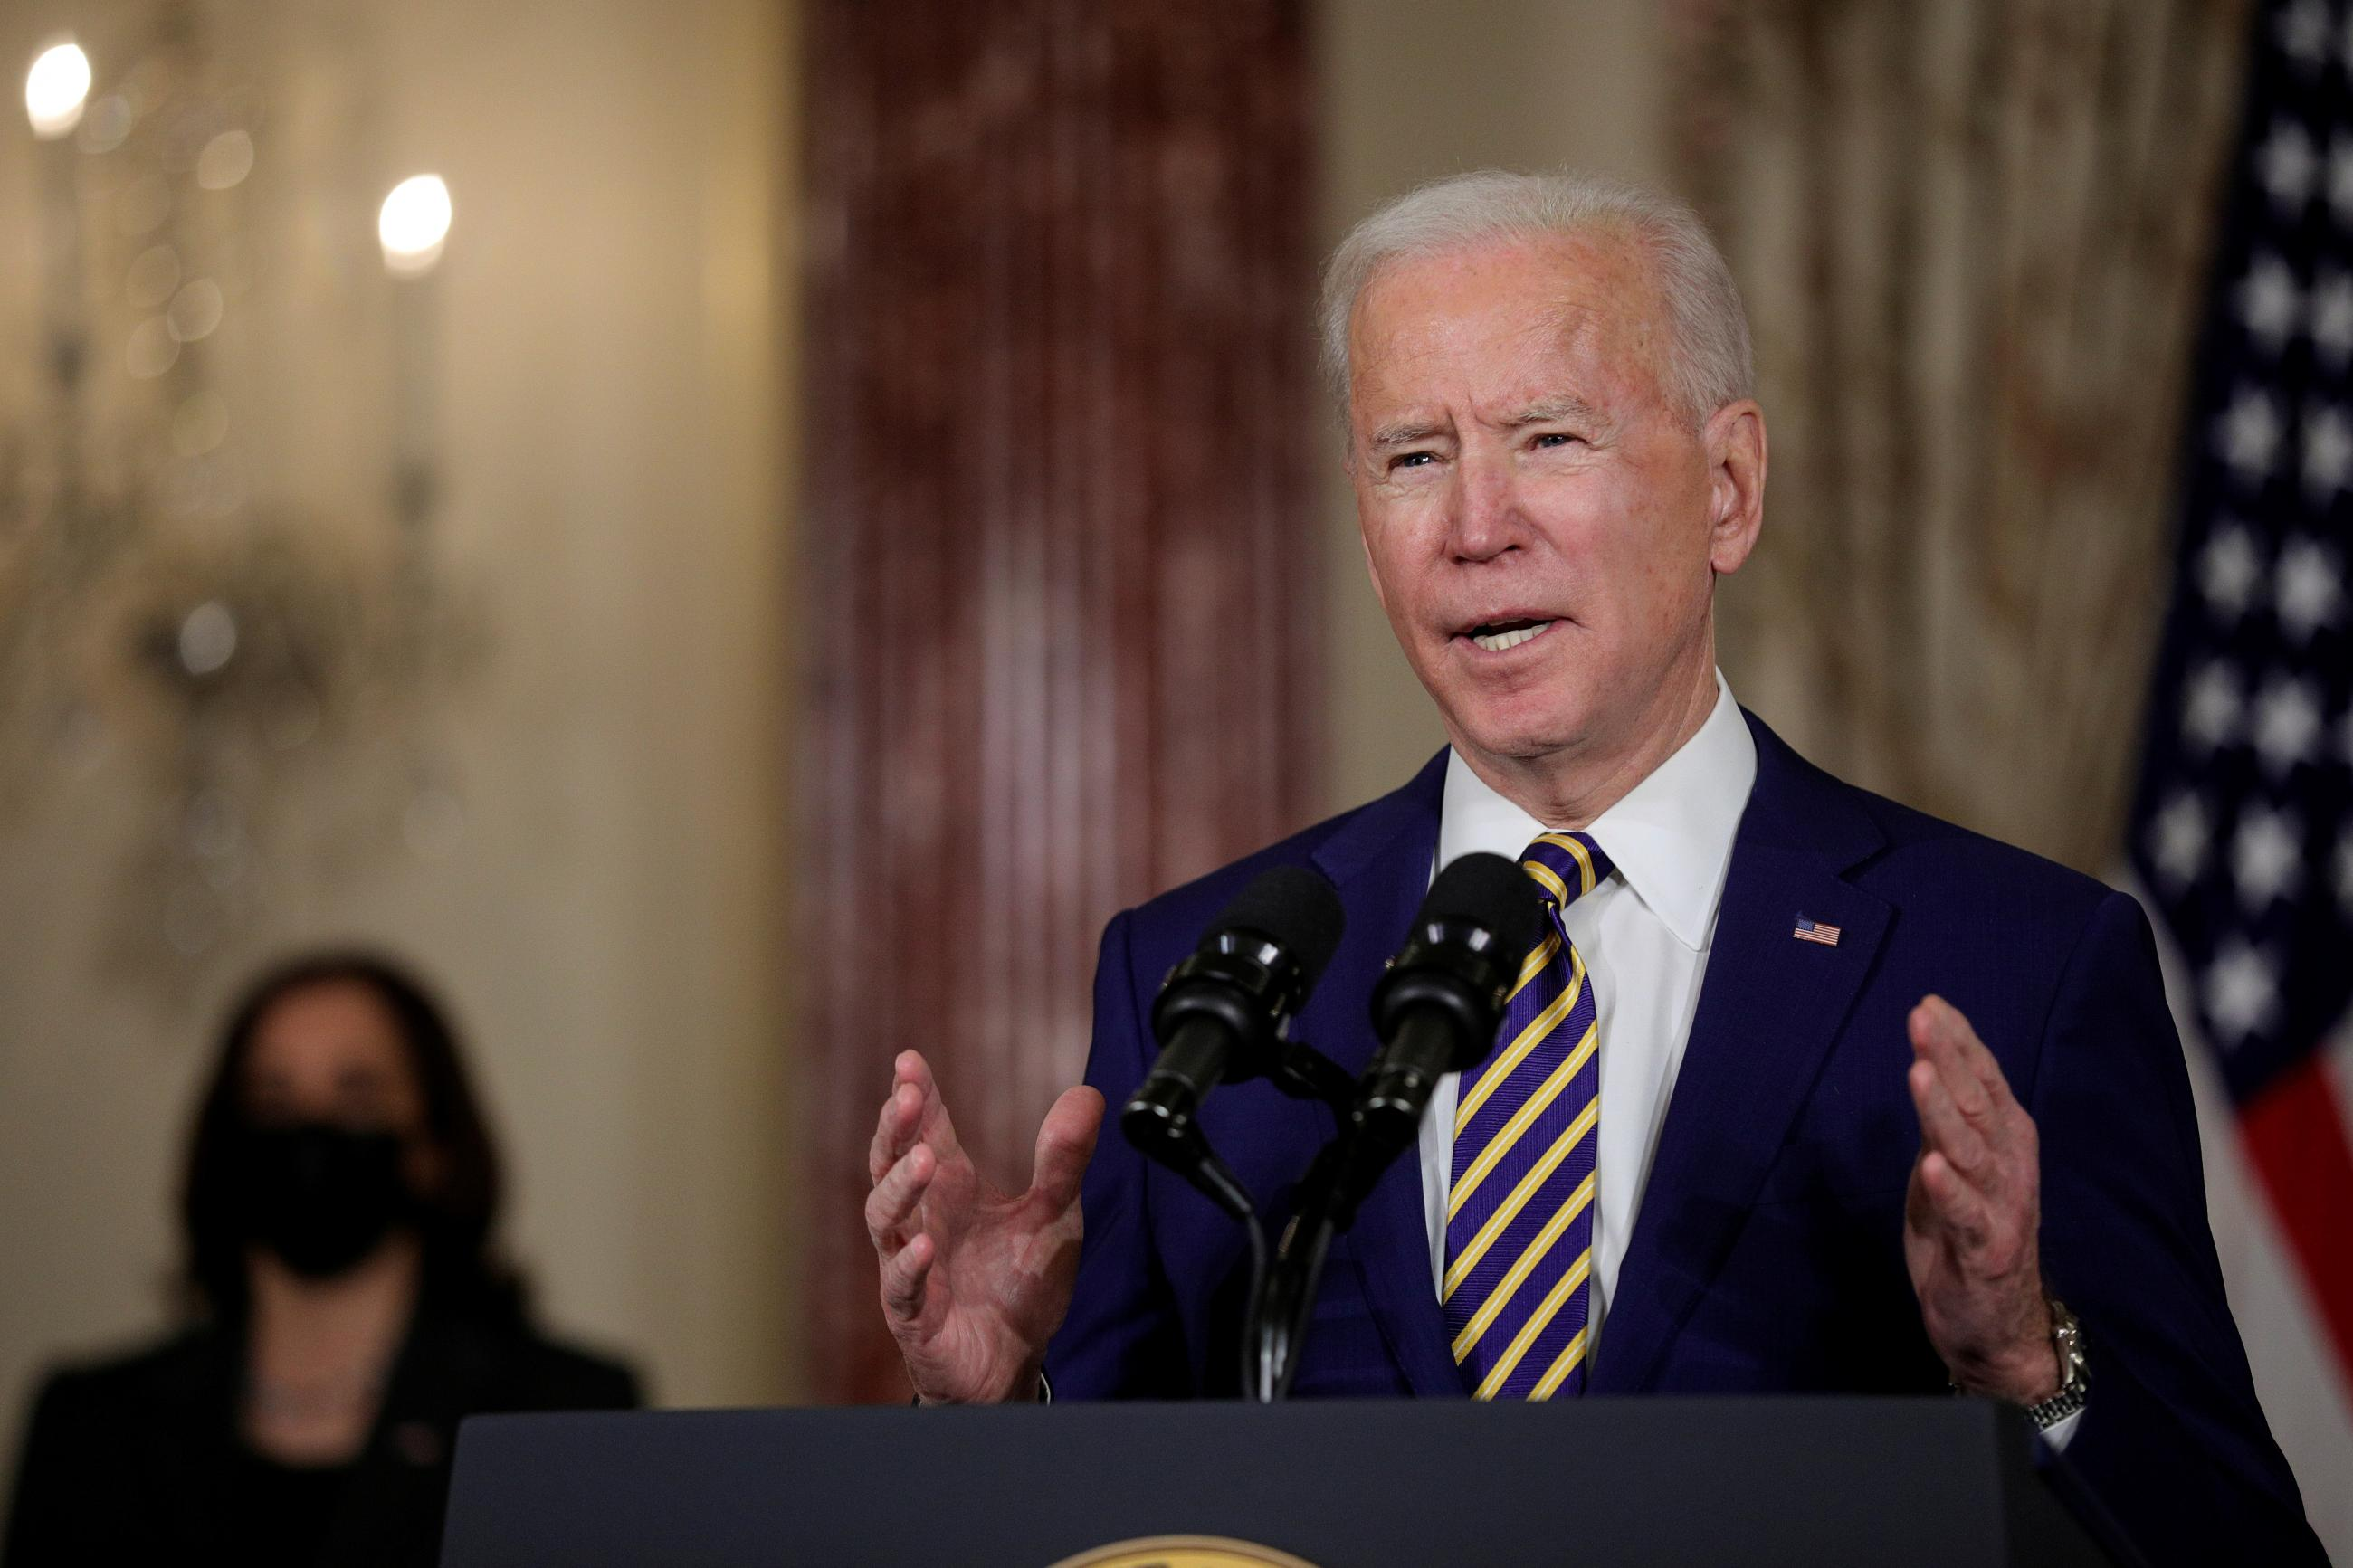 U.S. President Joe Biden delivers a foreign policy address as Vice President Kamala Harris listens, at the State Department in Washington, DC on February 4, 2021.